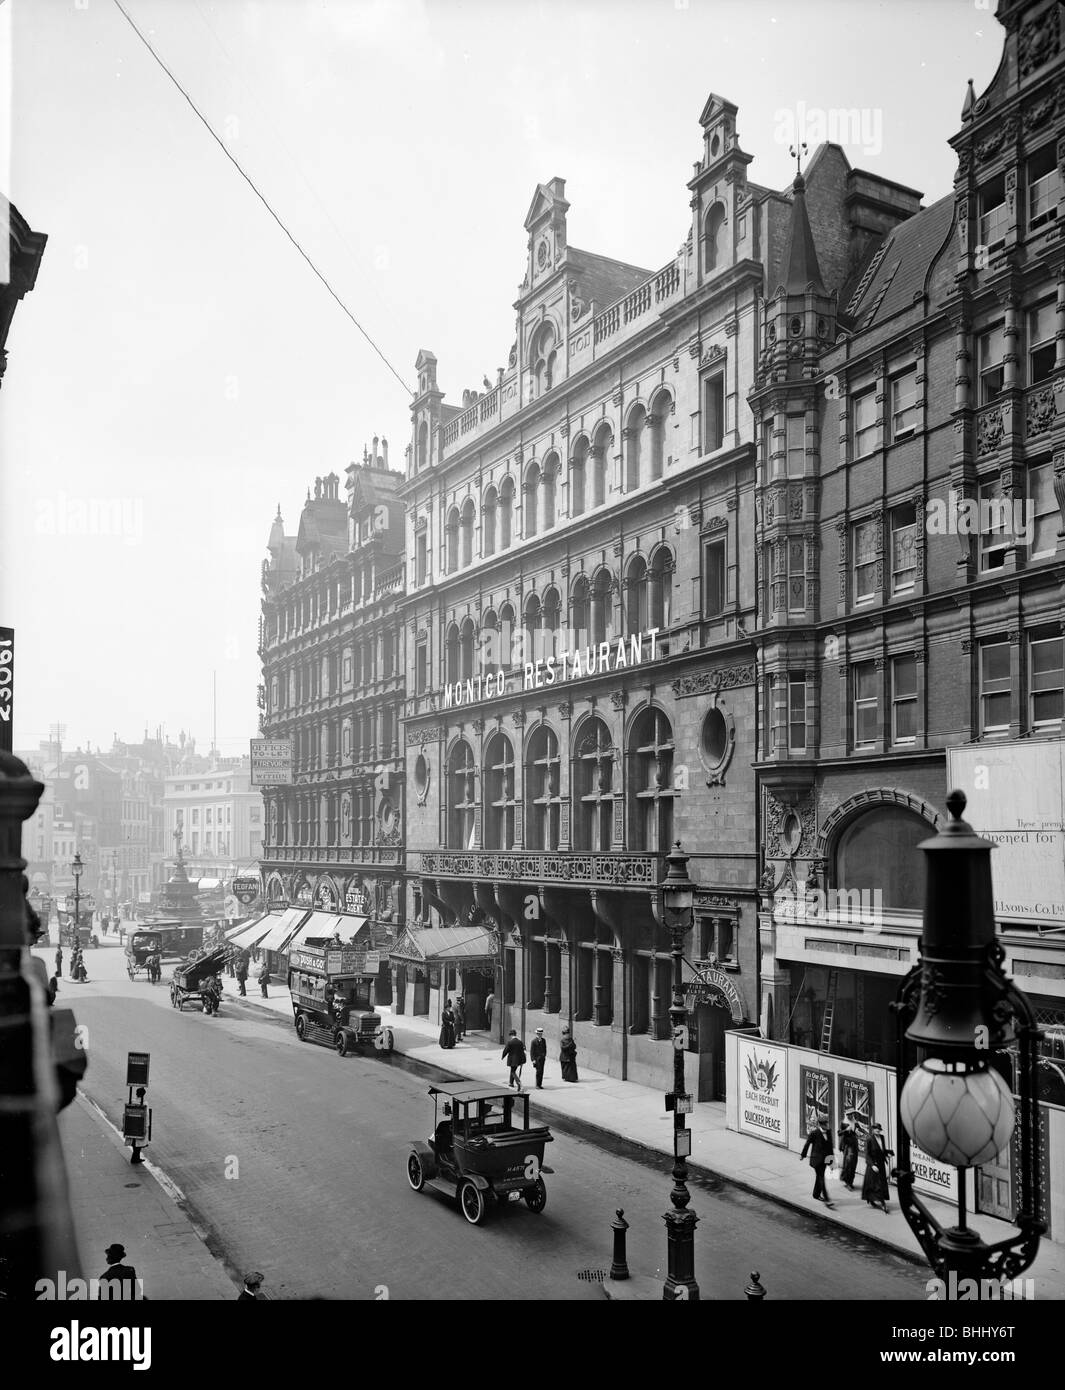 Shaftesbury Avenue, Westminster, London, 1915. Artist: Bedford Lemere and Company Stock Photo